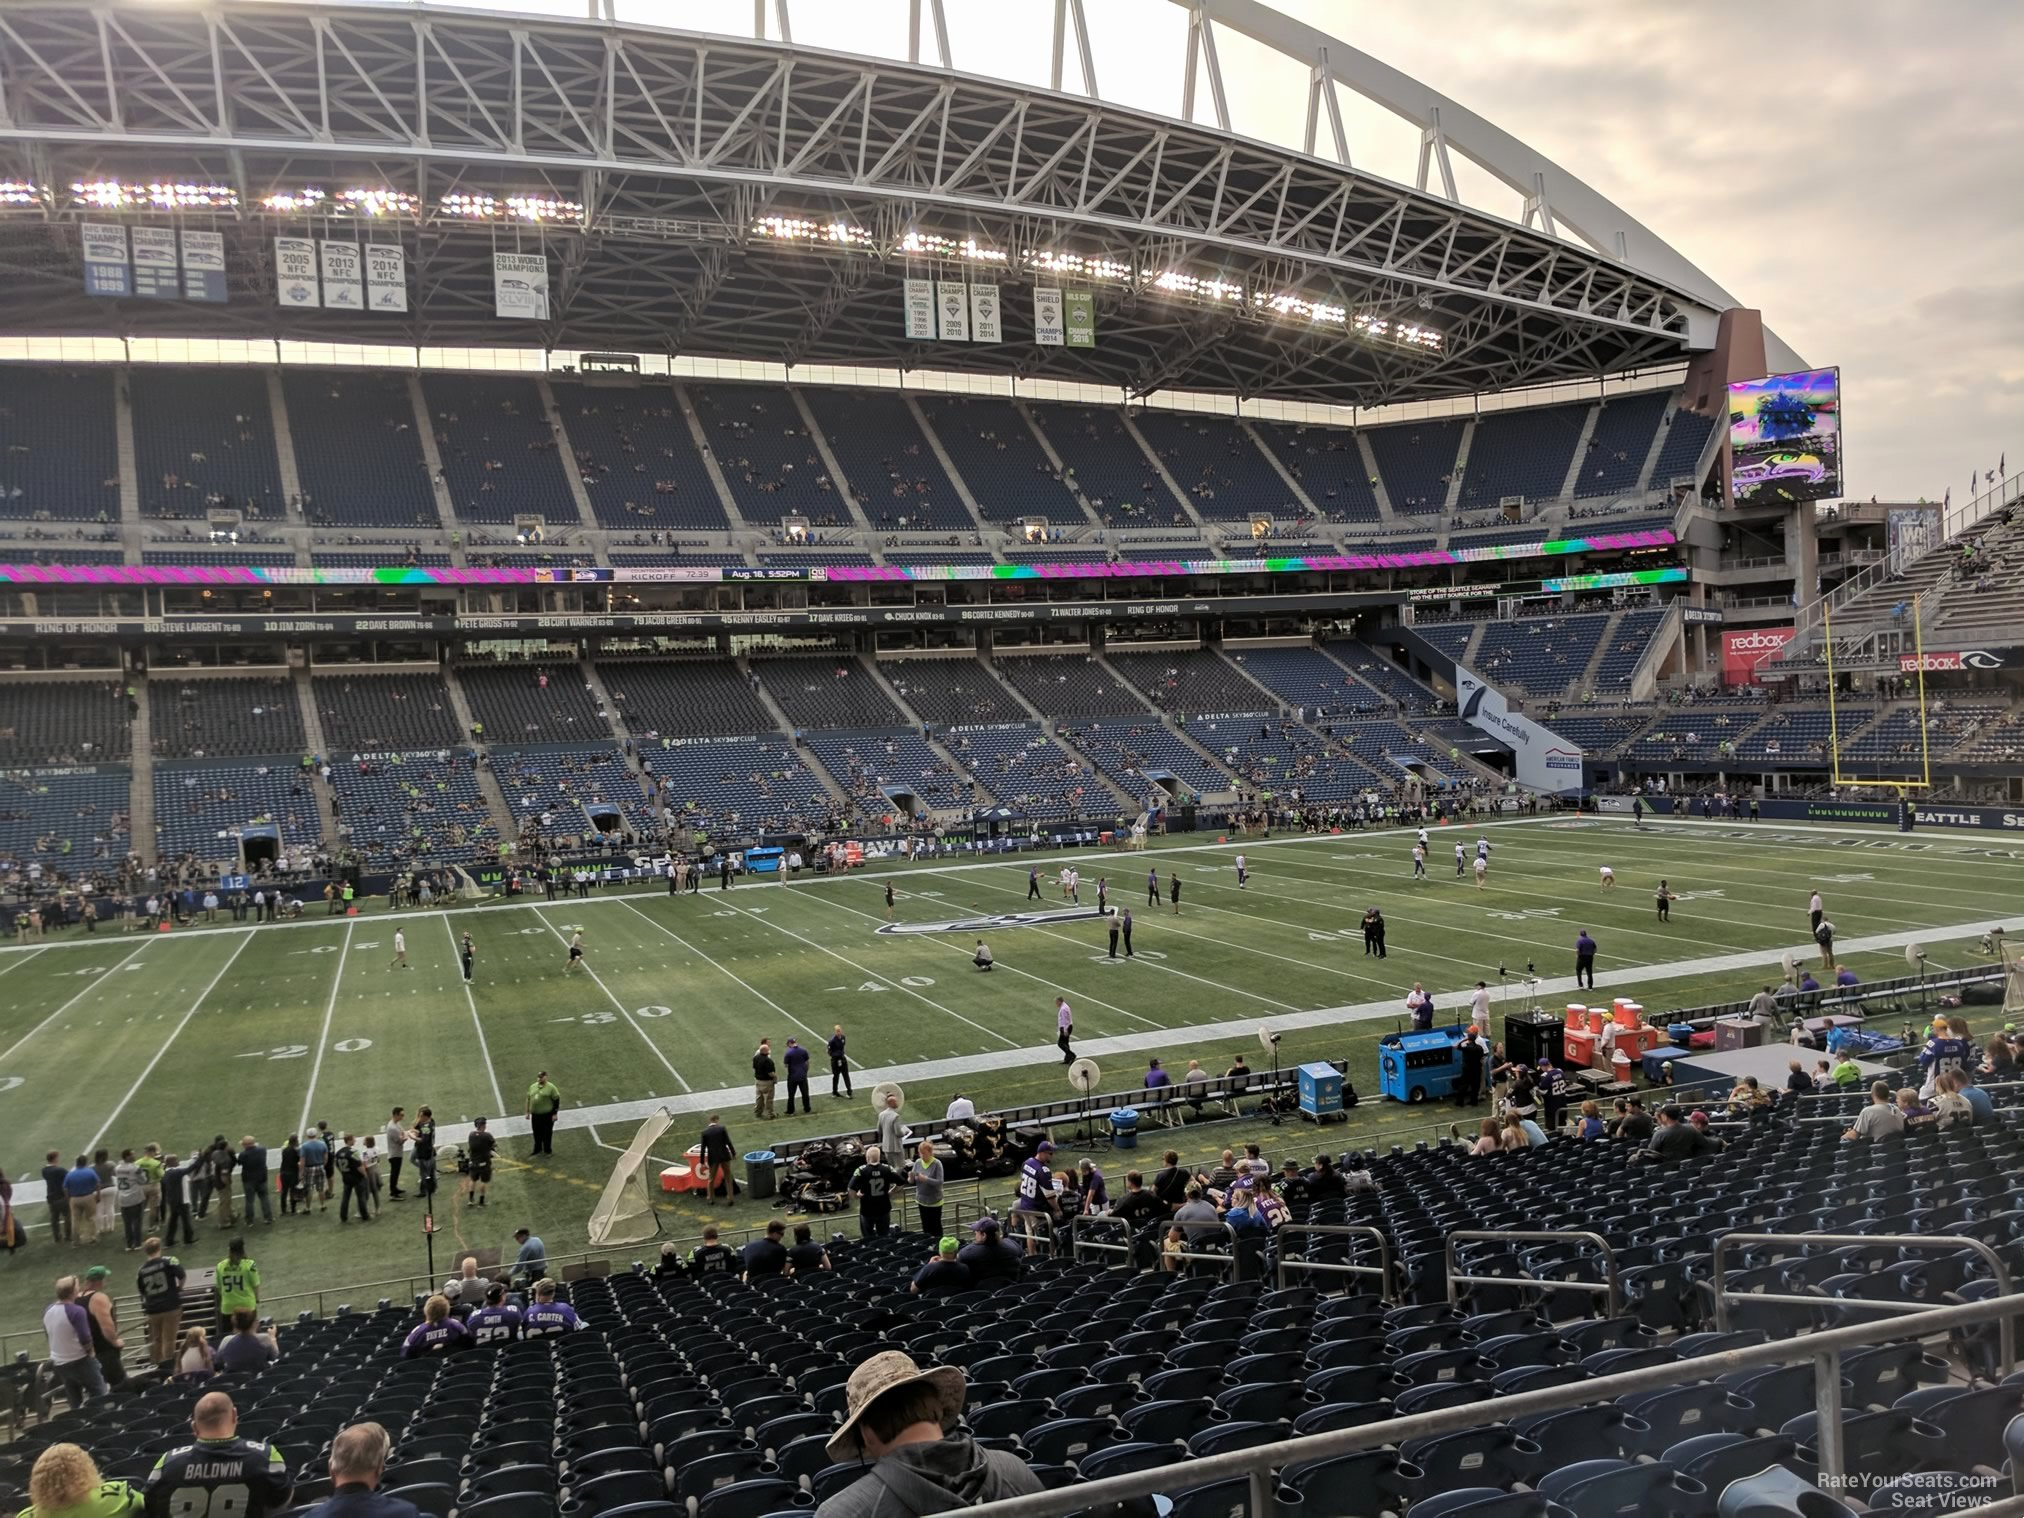 Seahawks Stadium Seat View Beautiful Centurylink Field Section 211 Seattle Seahawks